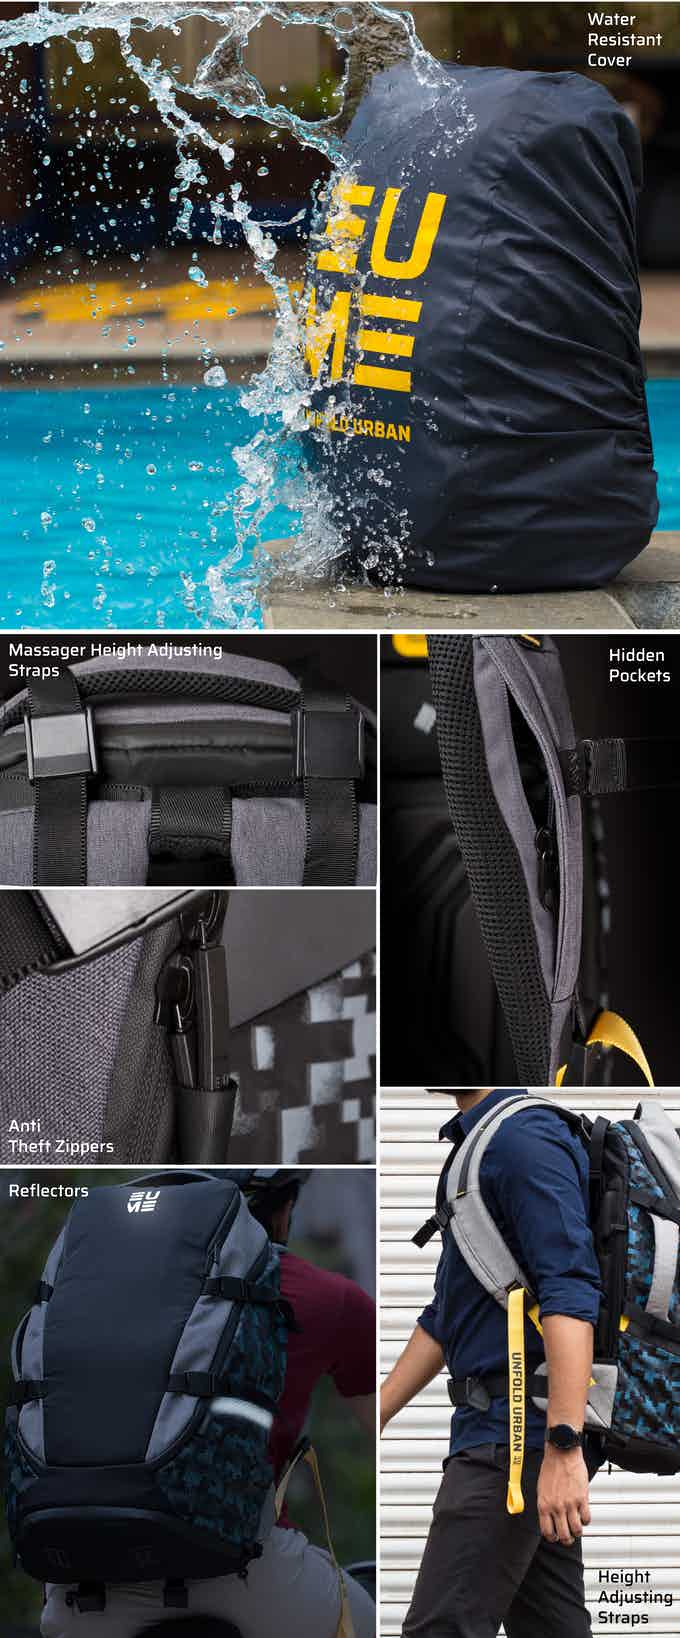 Daily Backpack and Travel pack share some incredible features